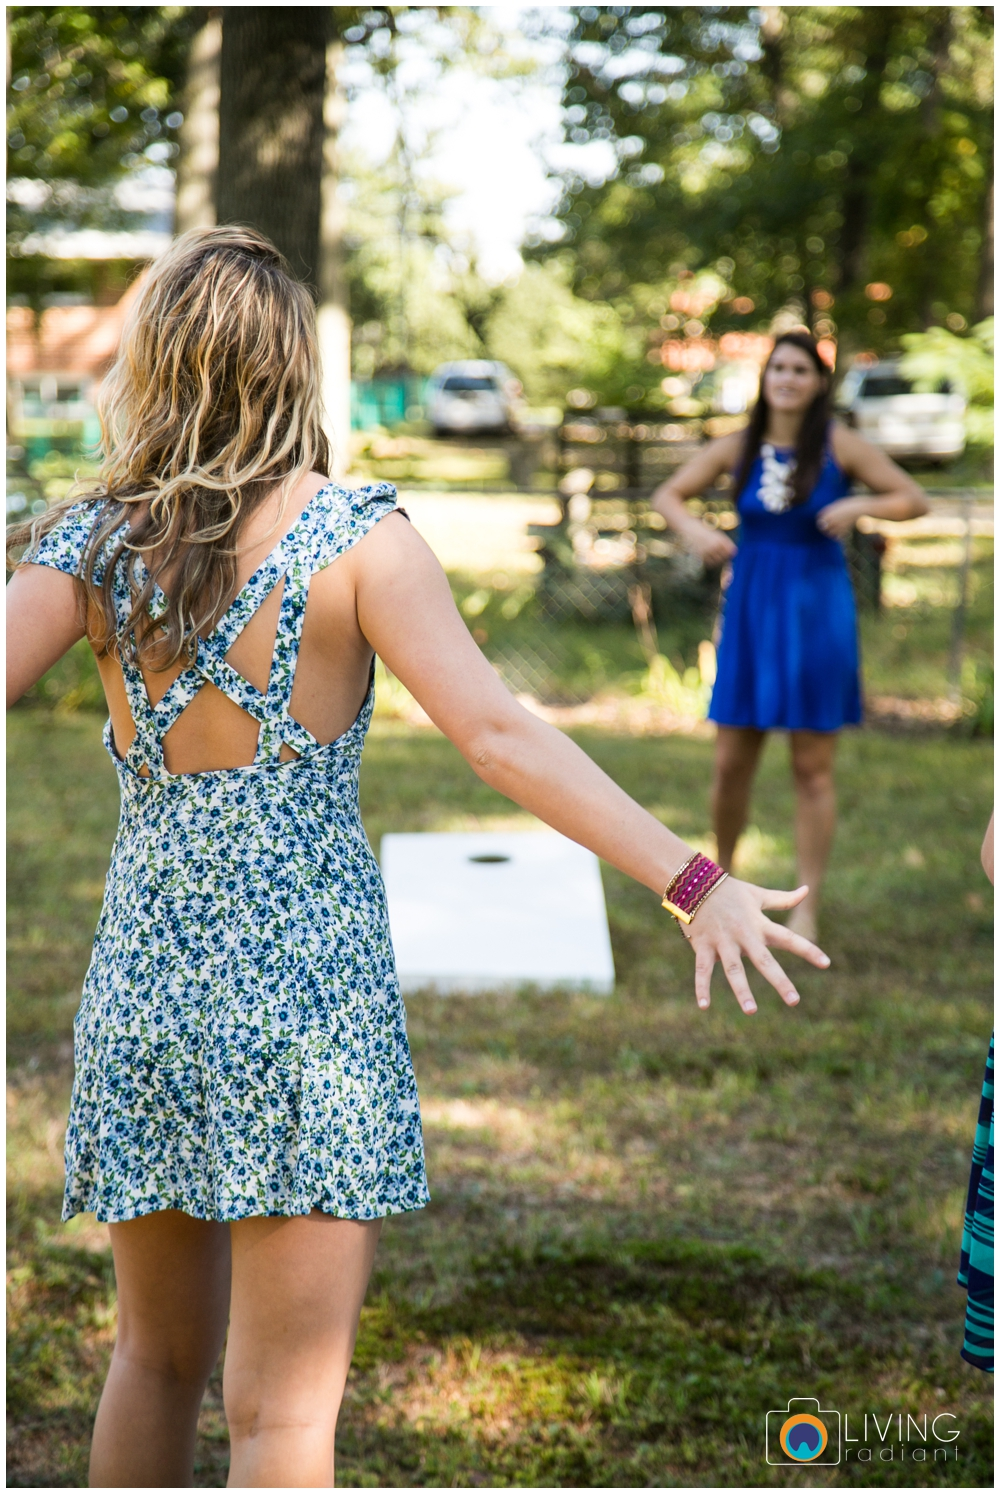 brent-laura-engagement-party-baltimore-living-radiant-photography_0046.jpg